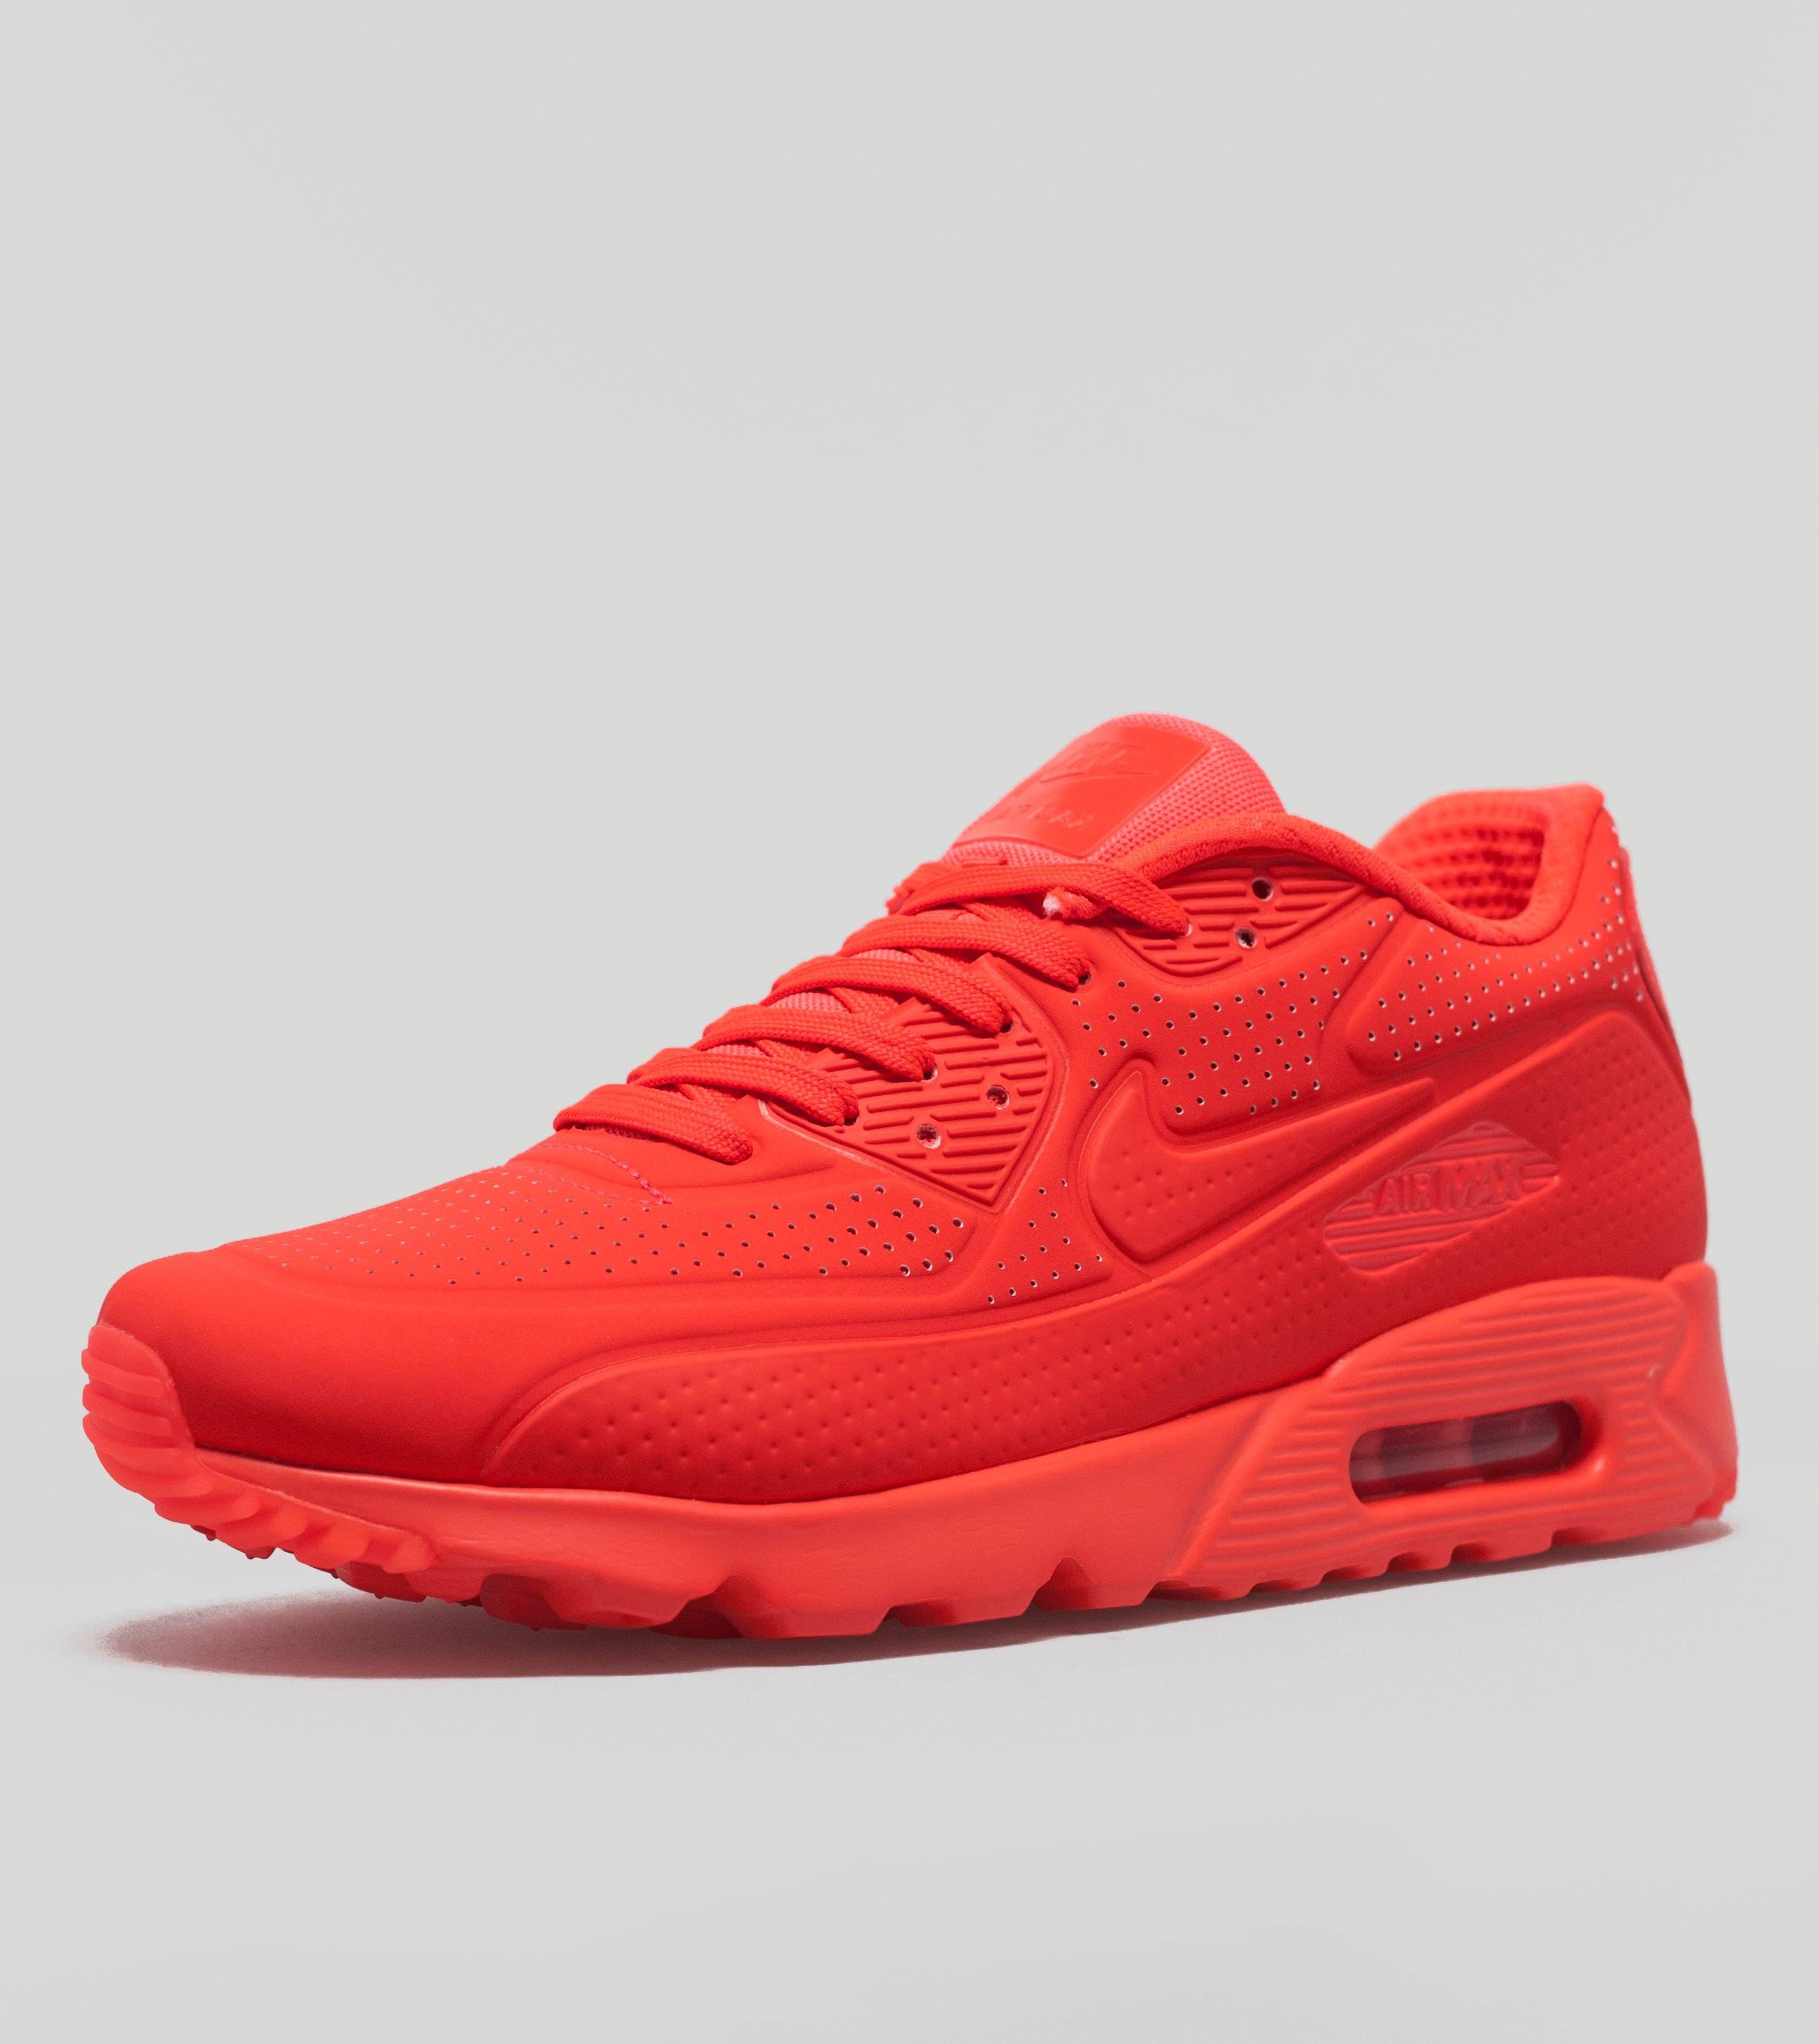 the best attitude 149c8 feeff Nike Air Max 90 Ultra Moire - find out more on our site. Find the